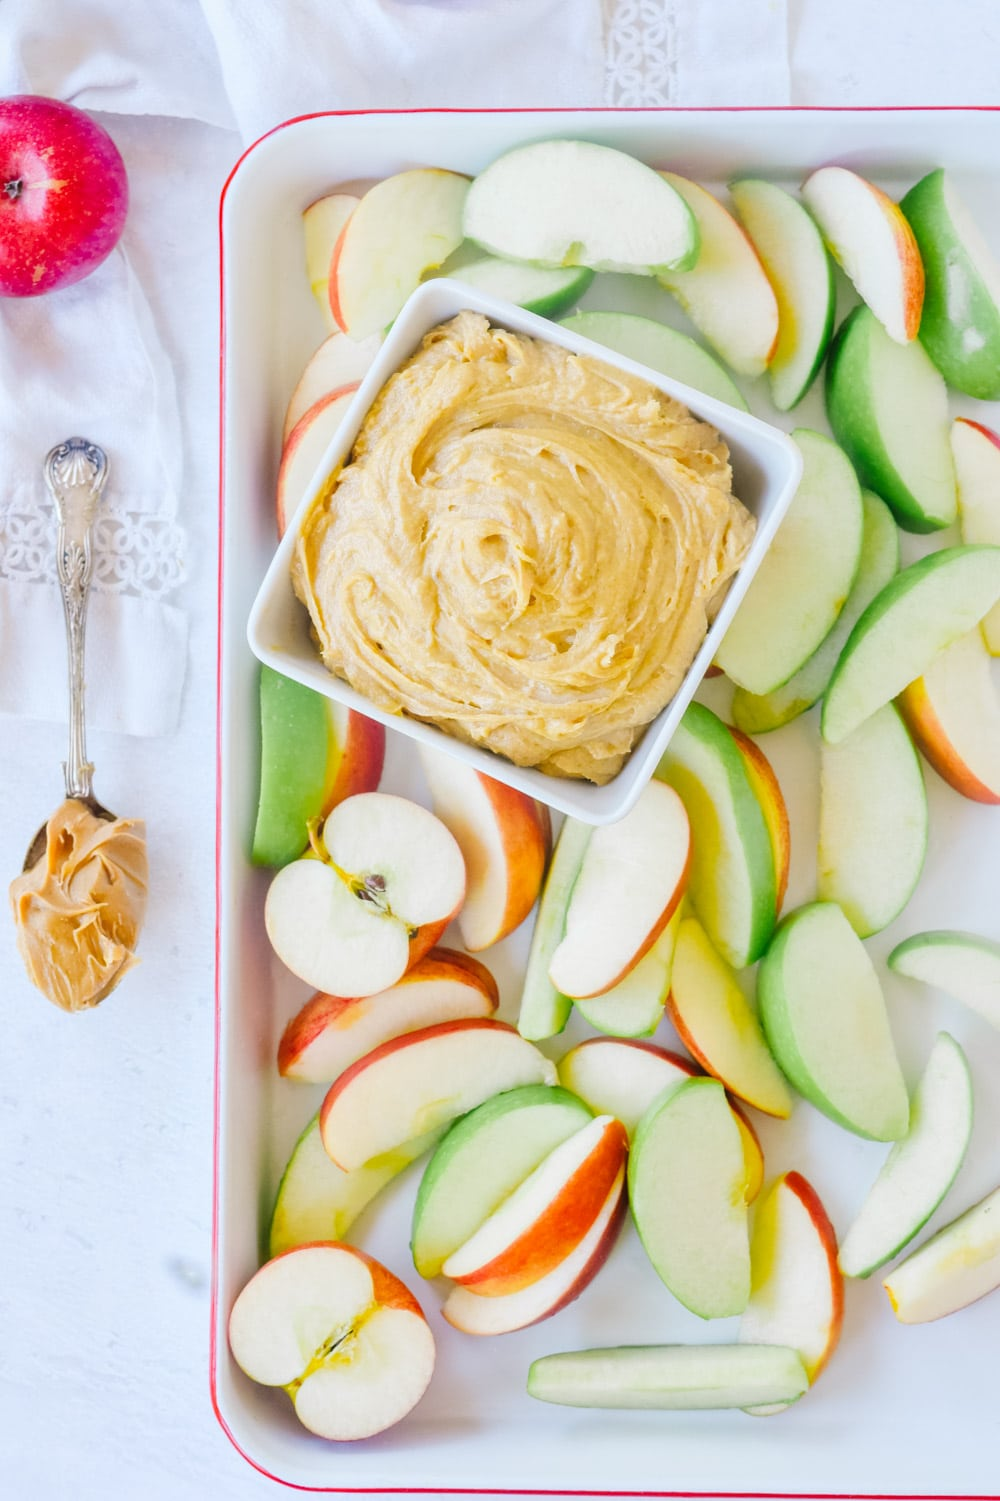 tray of apples with peanut butter dip